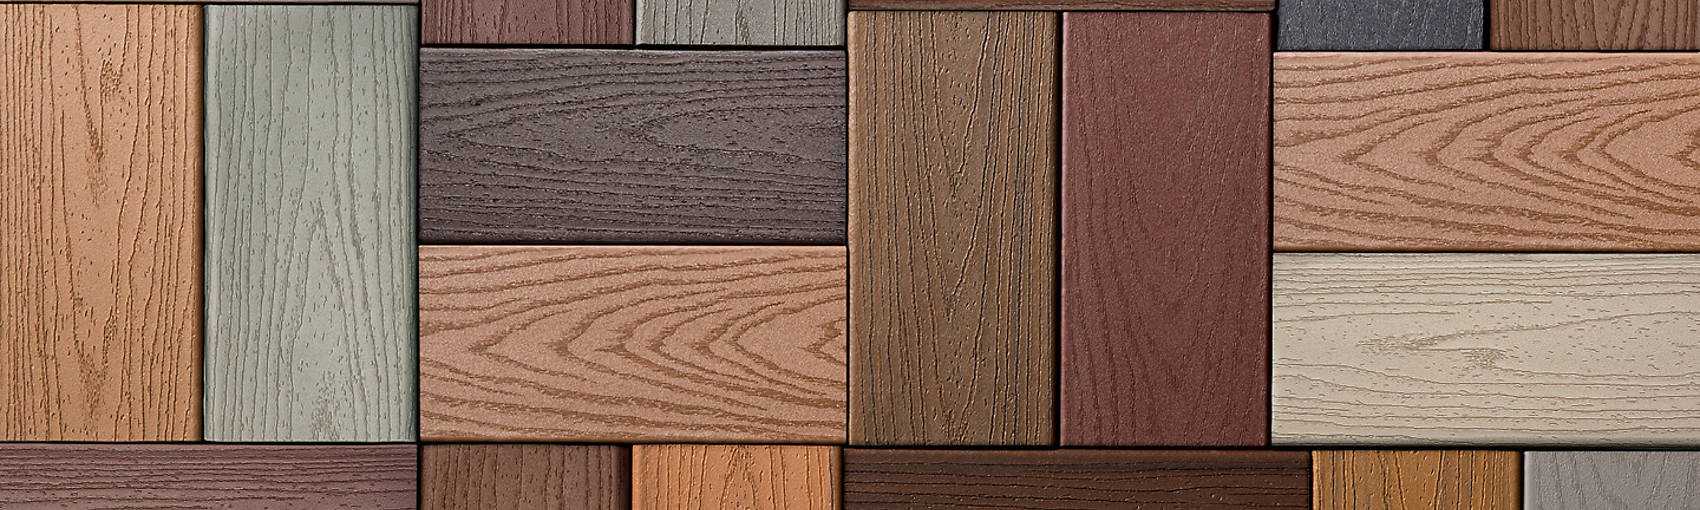 29 Cute Premier Hardwood Floors and Contracting Co Llc 2021 free download premier hardwood floors and contracting co llc of composite decking composite deck materials trex throughout trex color selector hero 2